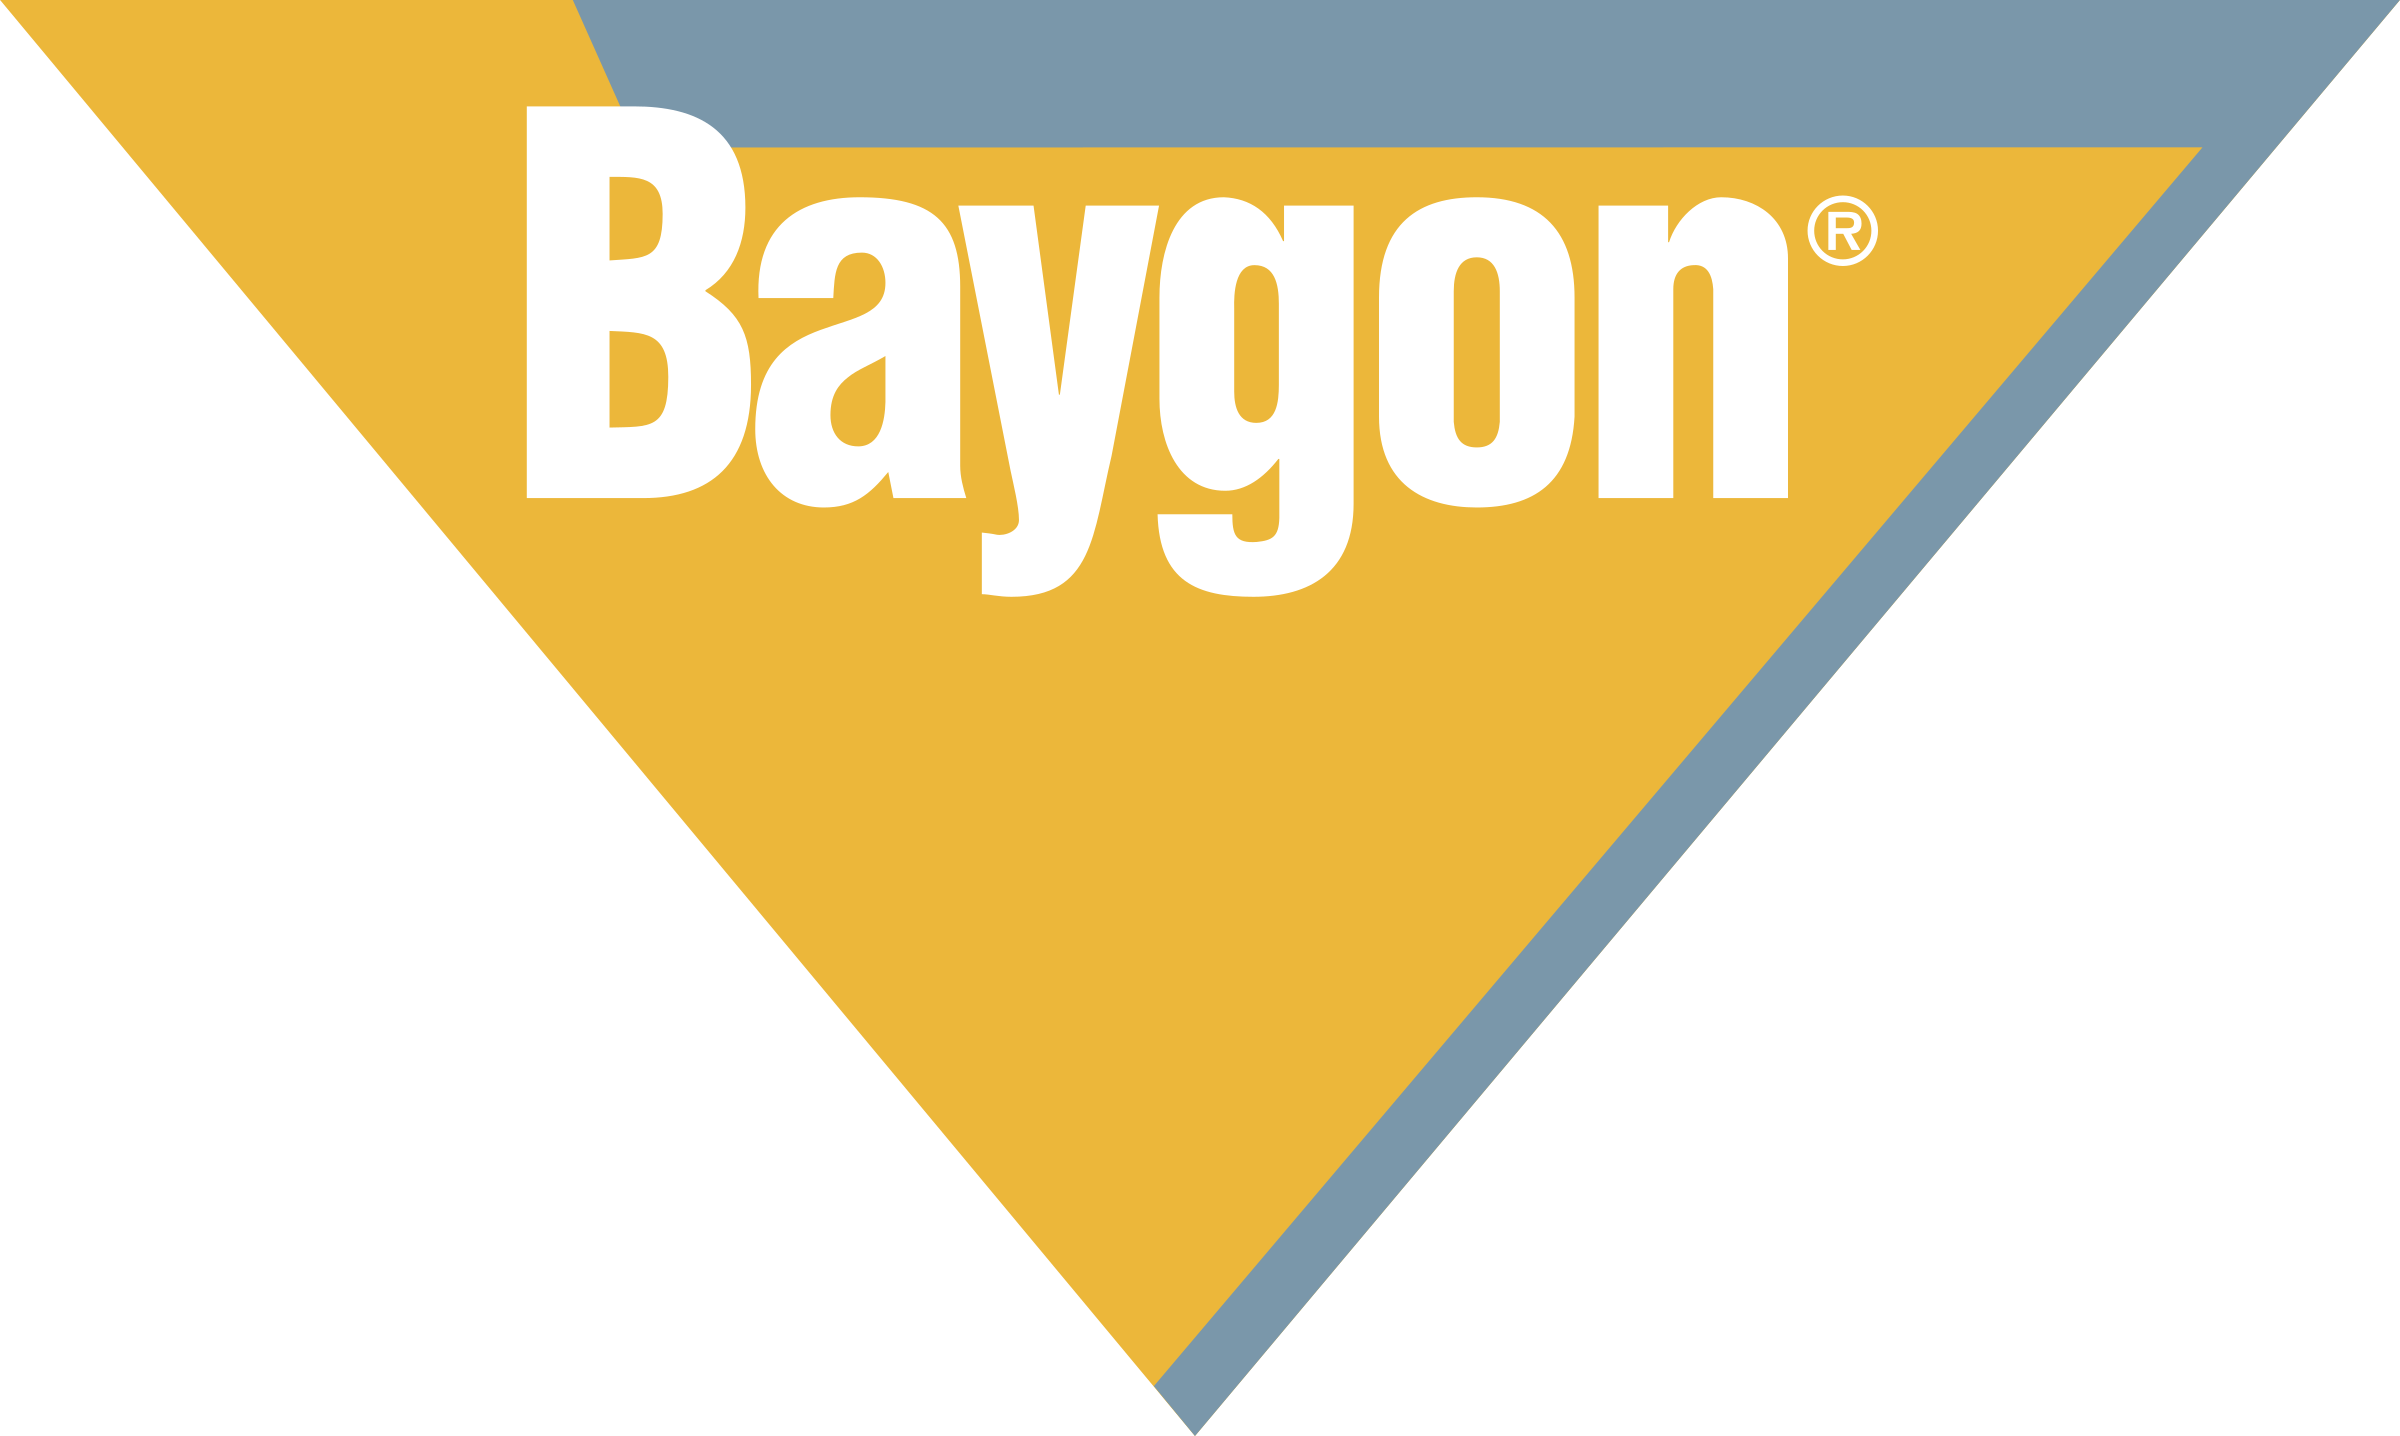 Baygon 2 Logo PNG Transparent & SVG Vector.